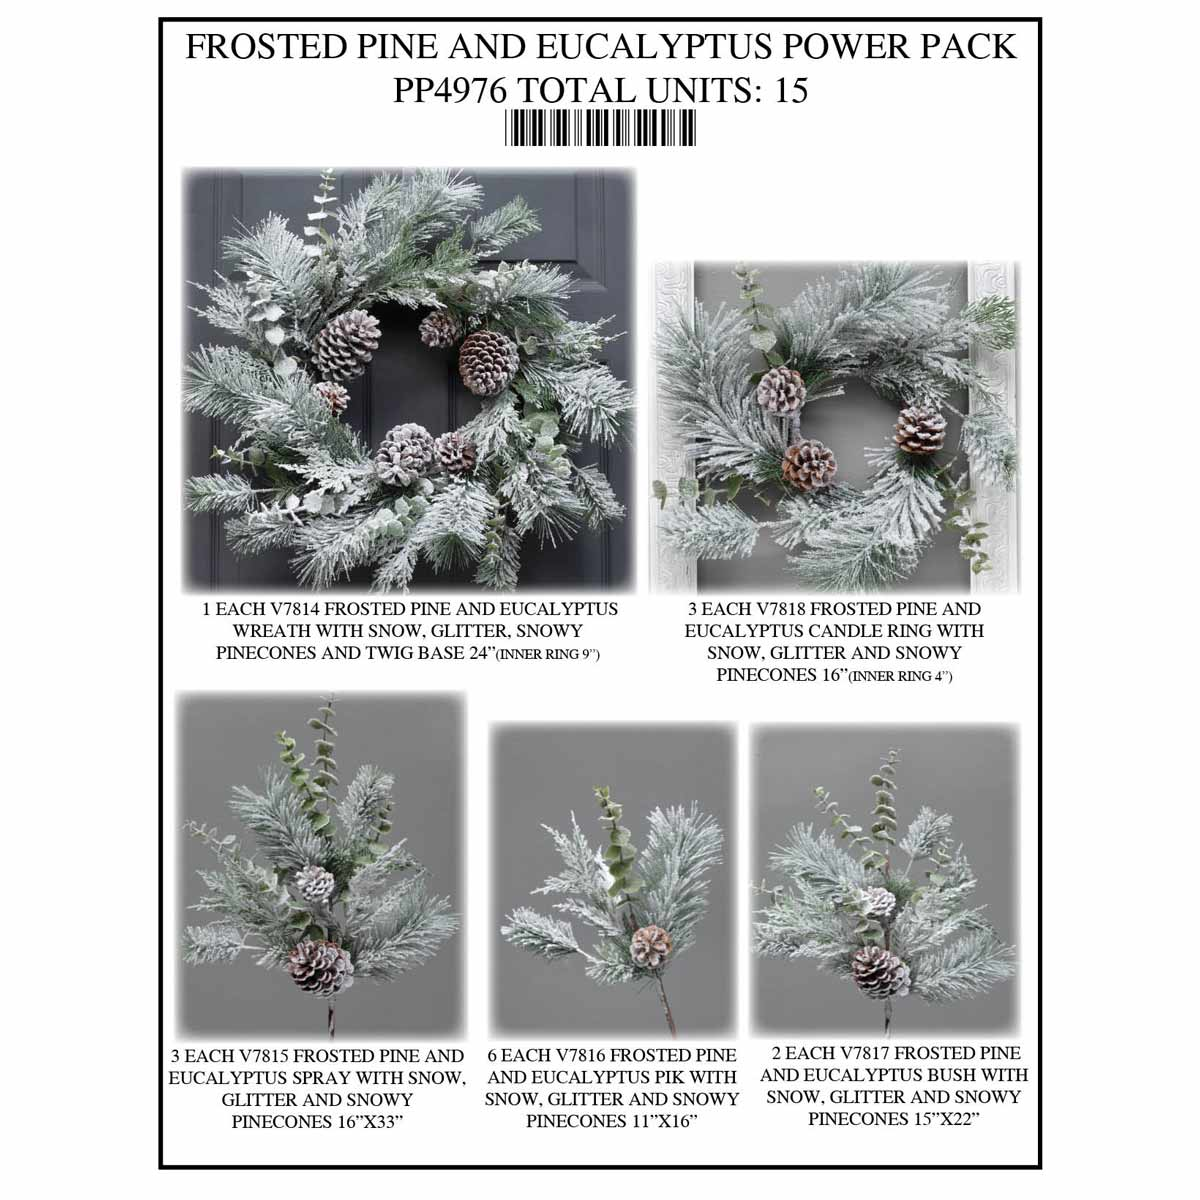 EUCALYPTUS FROST Power Pack 15 Units